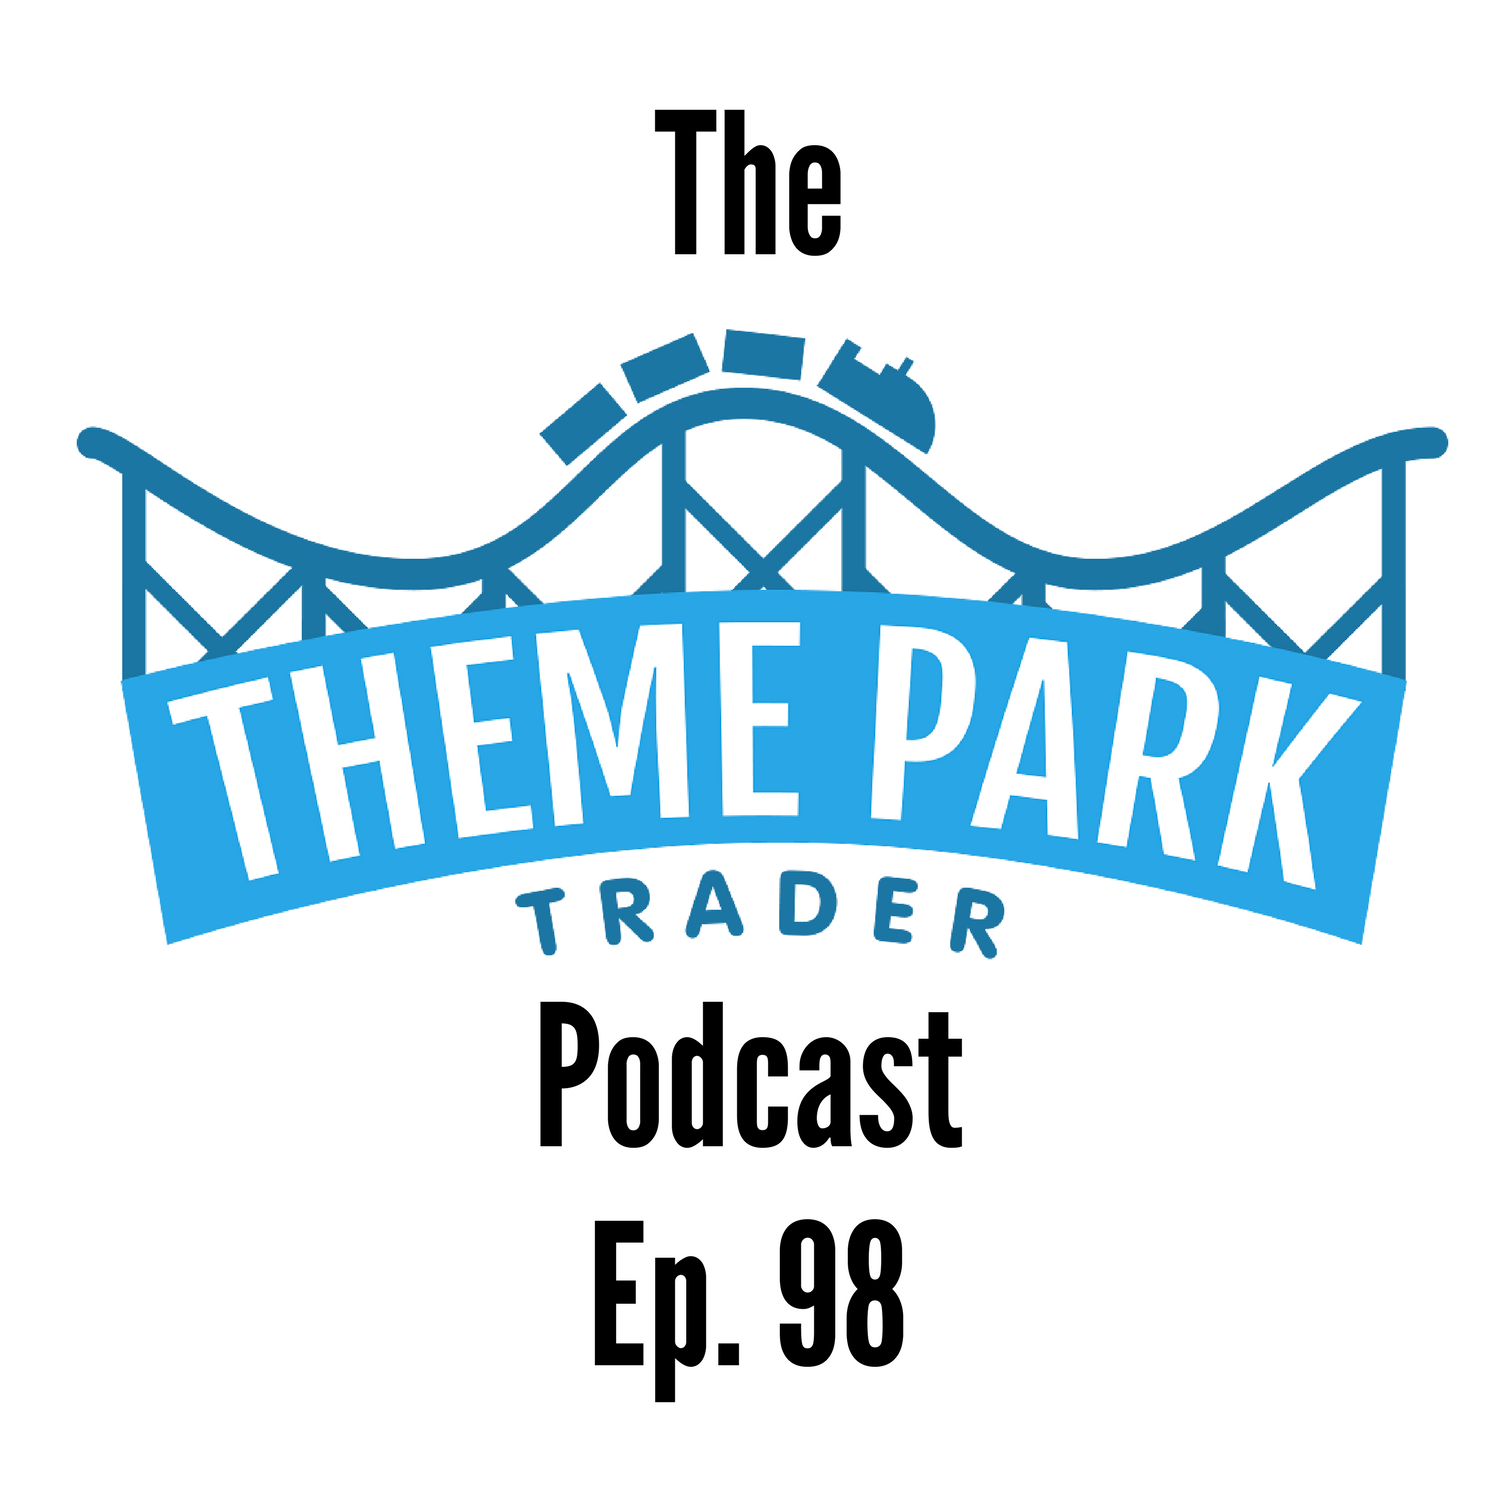 Episode 98 - What Attractions Would We Keep, Change or Remove in Adventureland & Fantasyland!